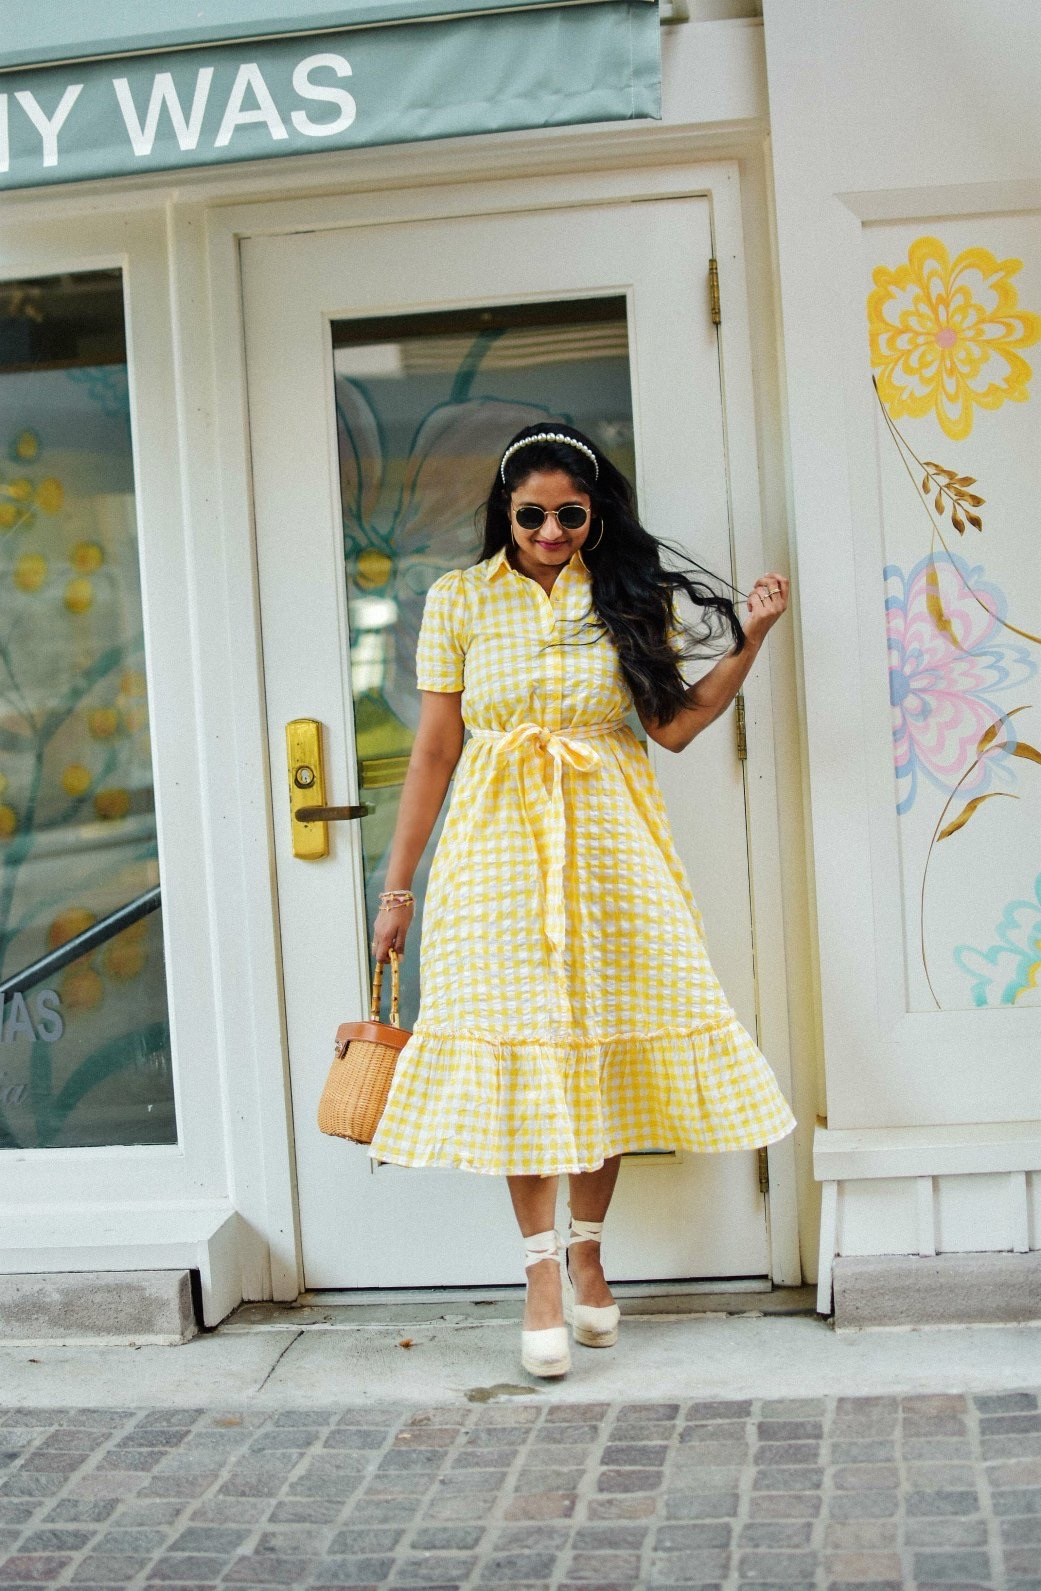 Wearing Wearing Lisa Marie Fernandez for Target Gingham Puff Sleeve Shirtdress, Castaner Carina Wedges in Cream, J.McLaughlin Ava wicker bag, pearl Headband 2 | Lisa Marie Fernandez by popular Maryland fashion blog, Dreaming Loud: image of a woman a Target Lisa Marie Fernandez yellow gingham dress, Castañer cream Carina 80 ankle tie wedge sandals, Amazon LXBSIYI Huge Gold Hoop Earrings, Olive and Piper Madison Pearl Headband, and holding a J. McLaughlin Skip to the end of the images gallery Skip to the beginning of the images gallery Ava Wicker Bag.